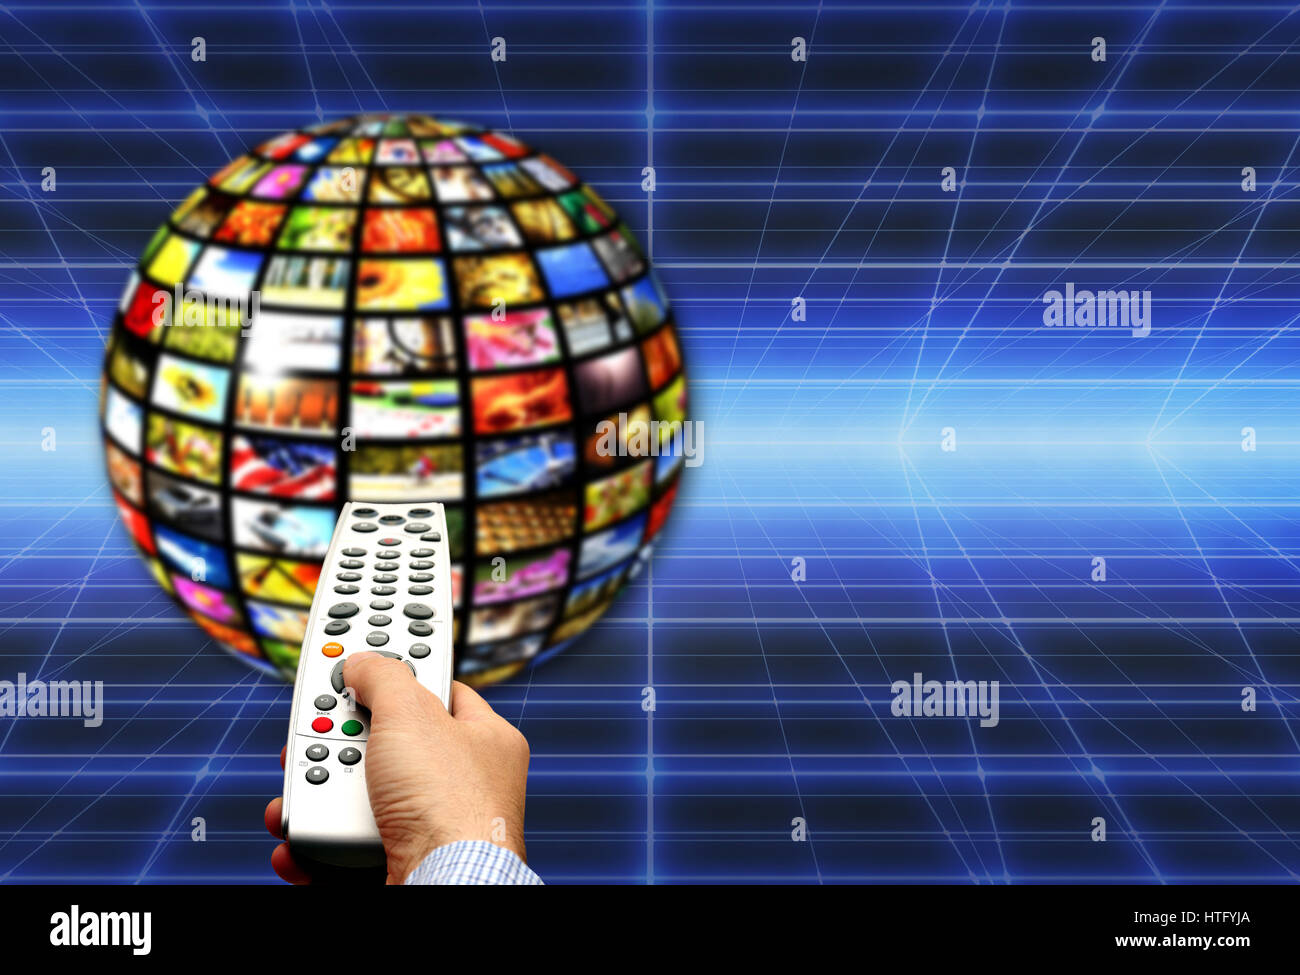 digital television concept - Stock Image